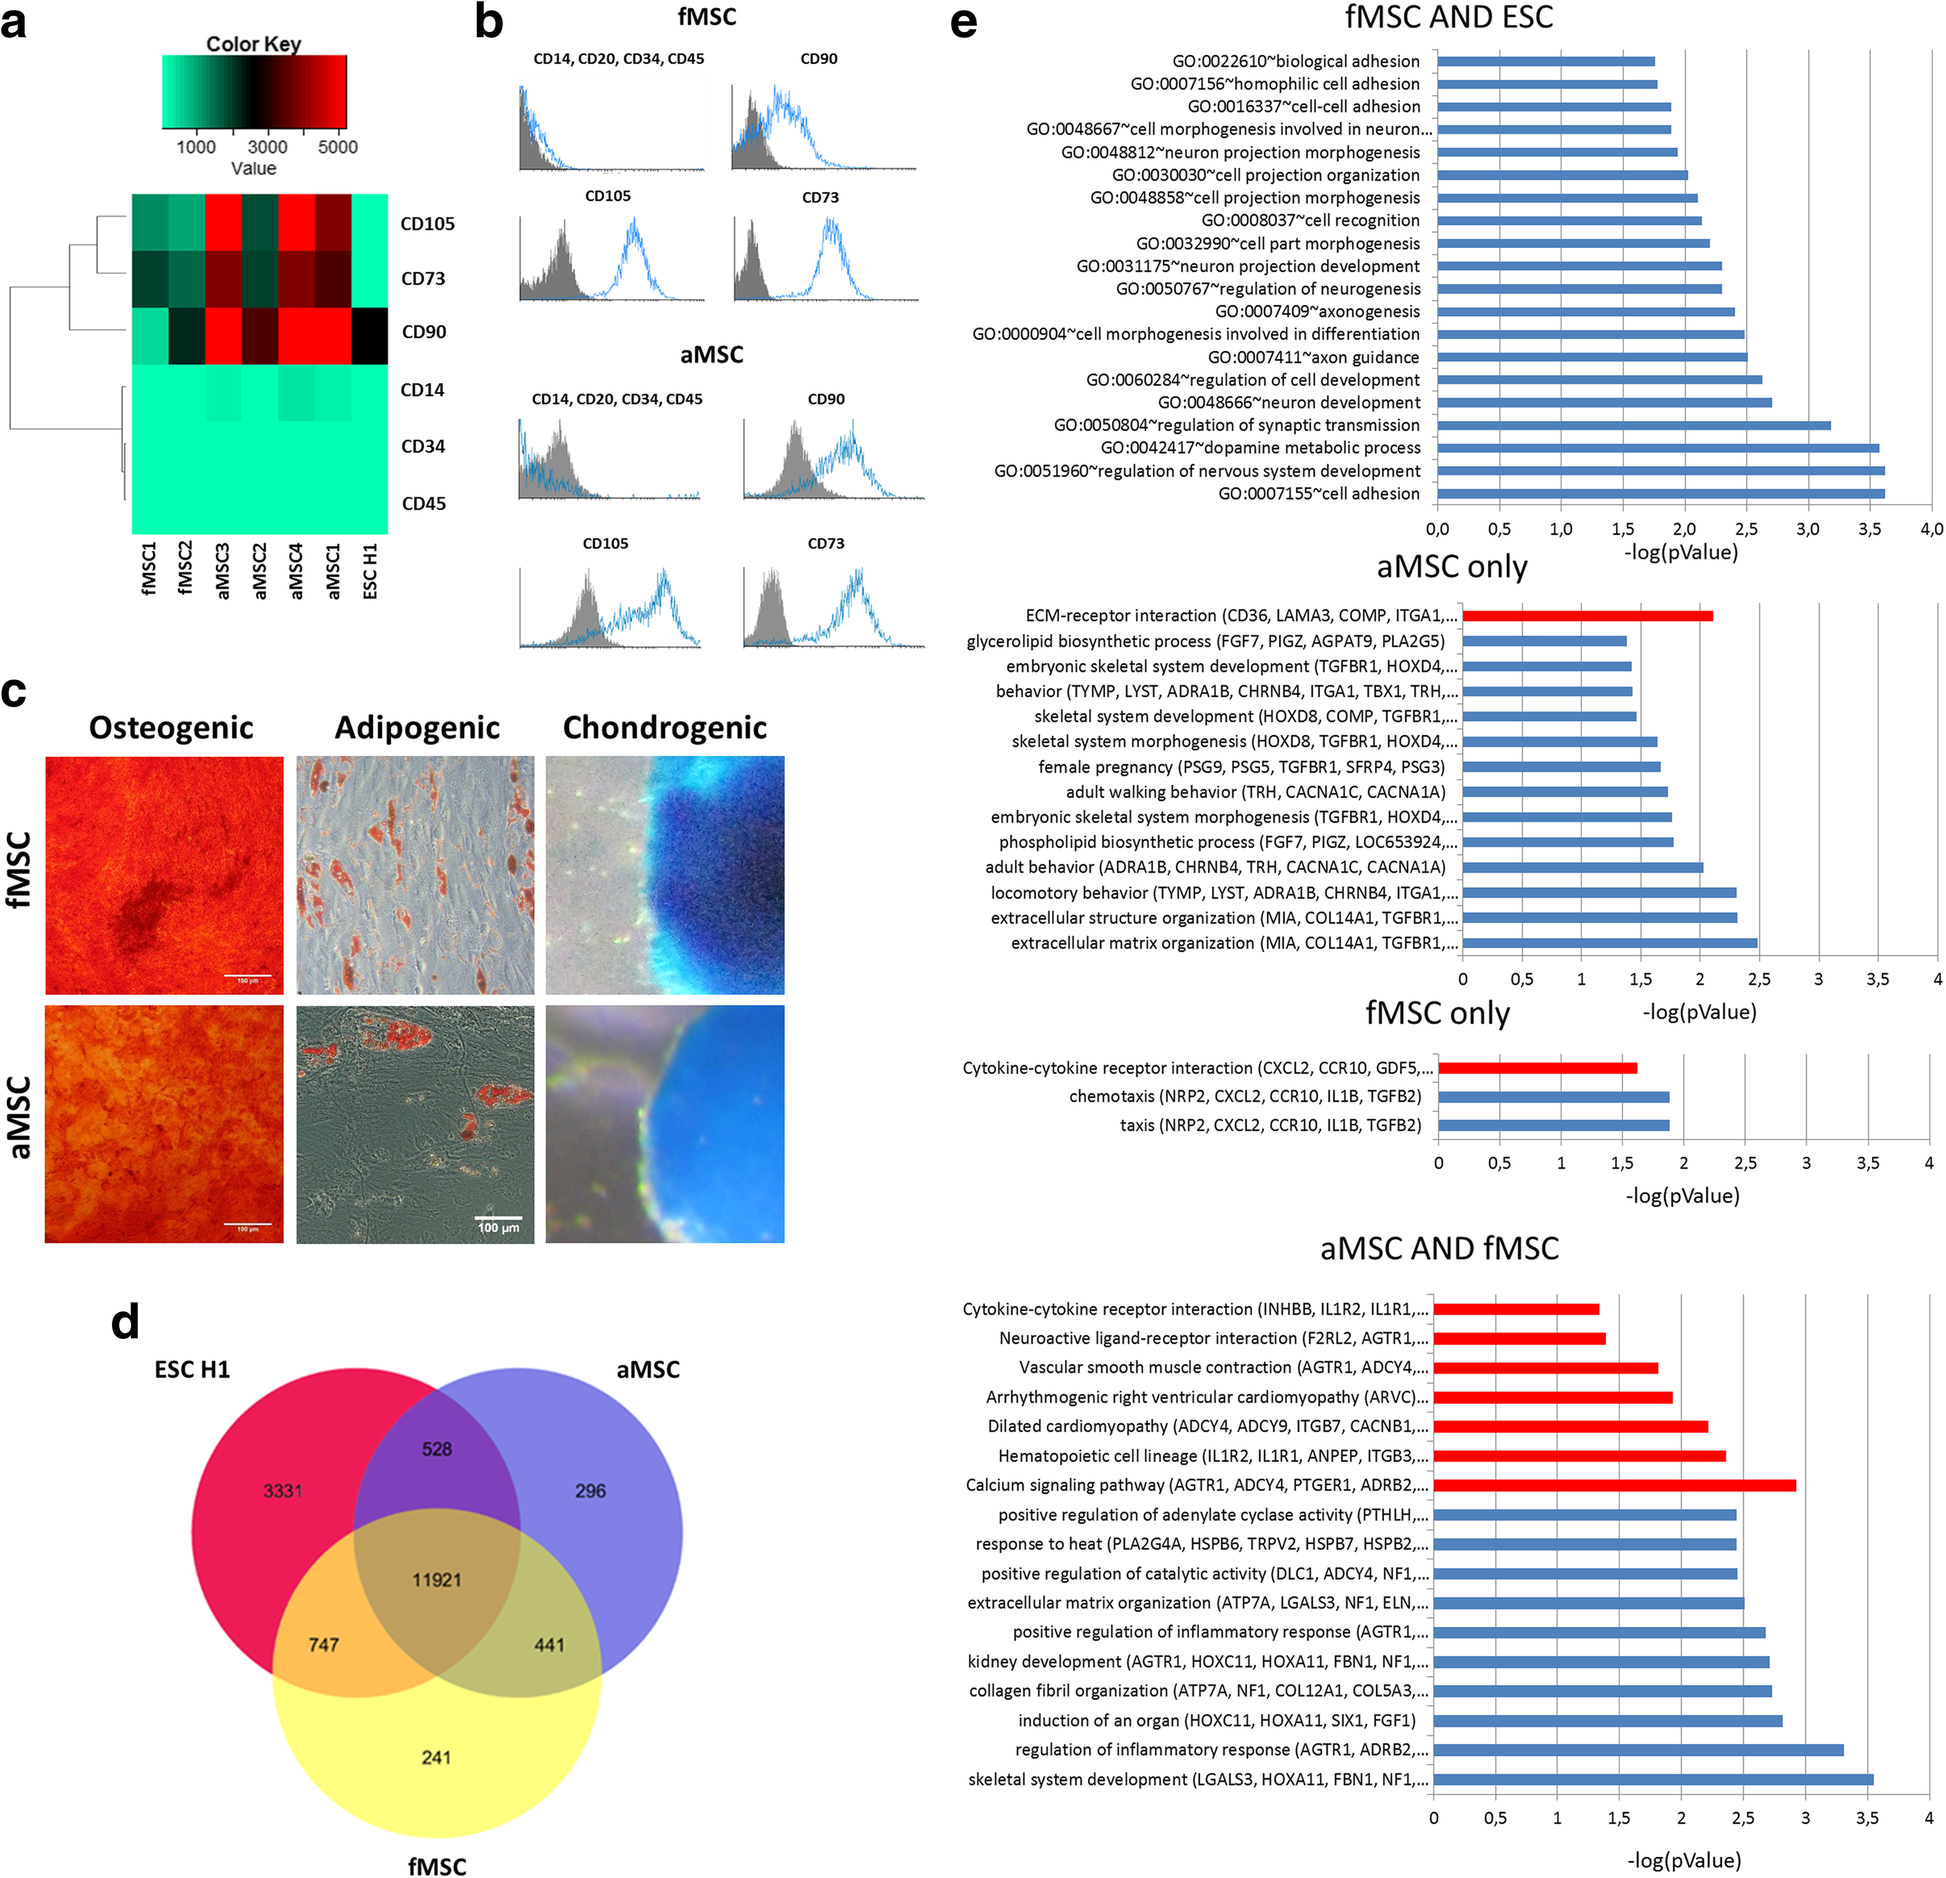 Human iPSC-derived MSCs (iMSCs) from aged individuals